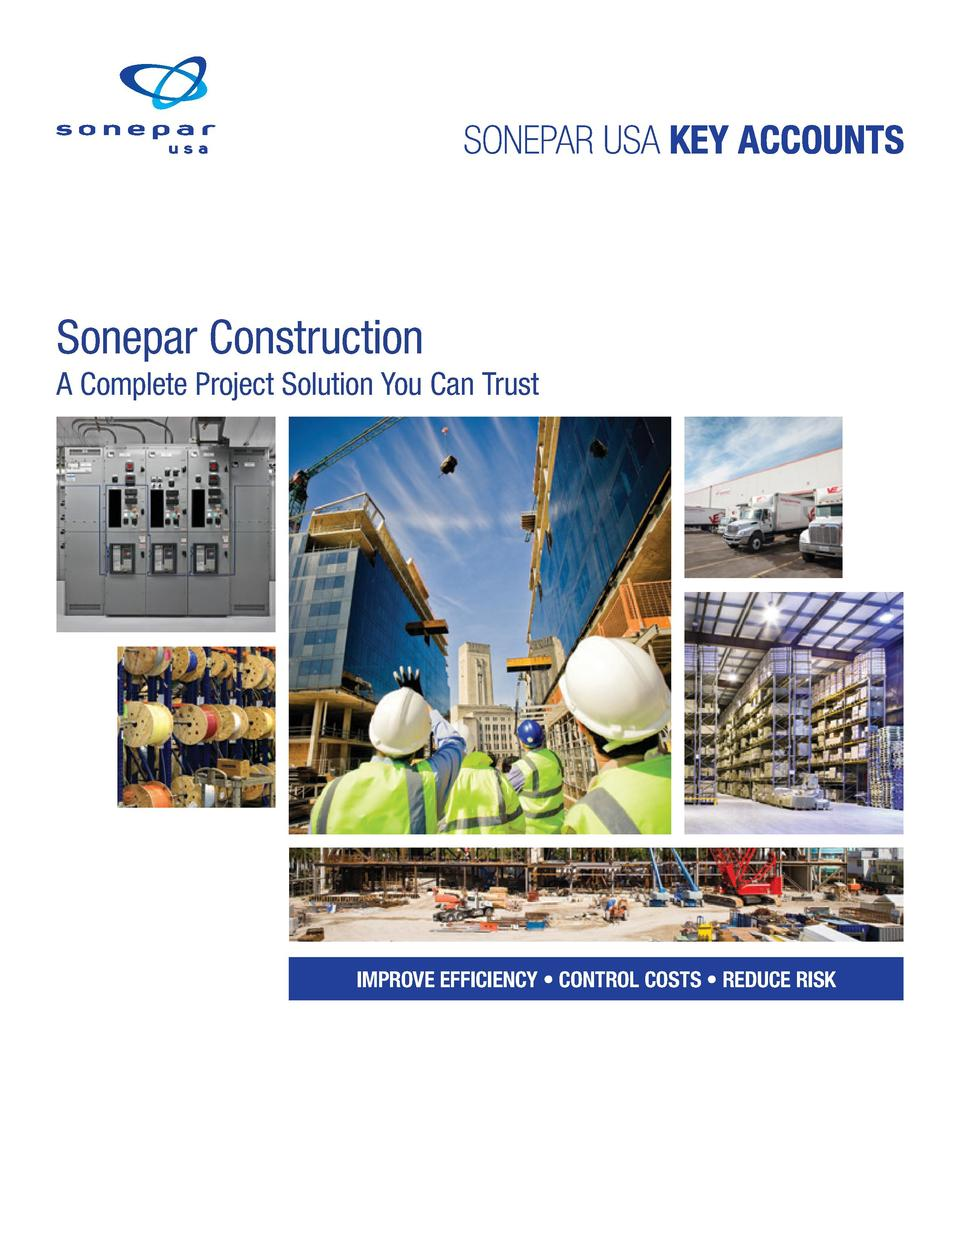 Sonepar Construction A Complete Project Solution You Can Trust  IMPROVE EFFICIENCY     CONTROL COSTS     REDUCE RISK